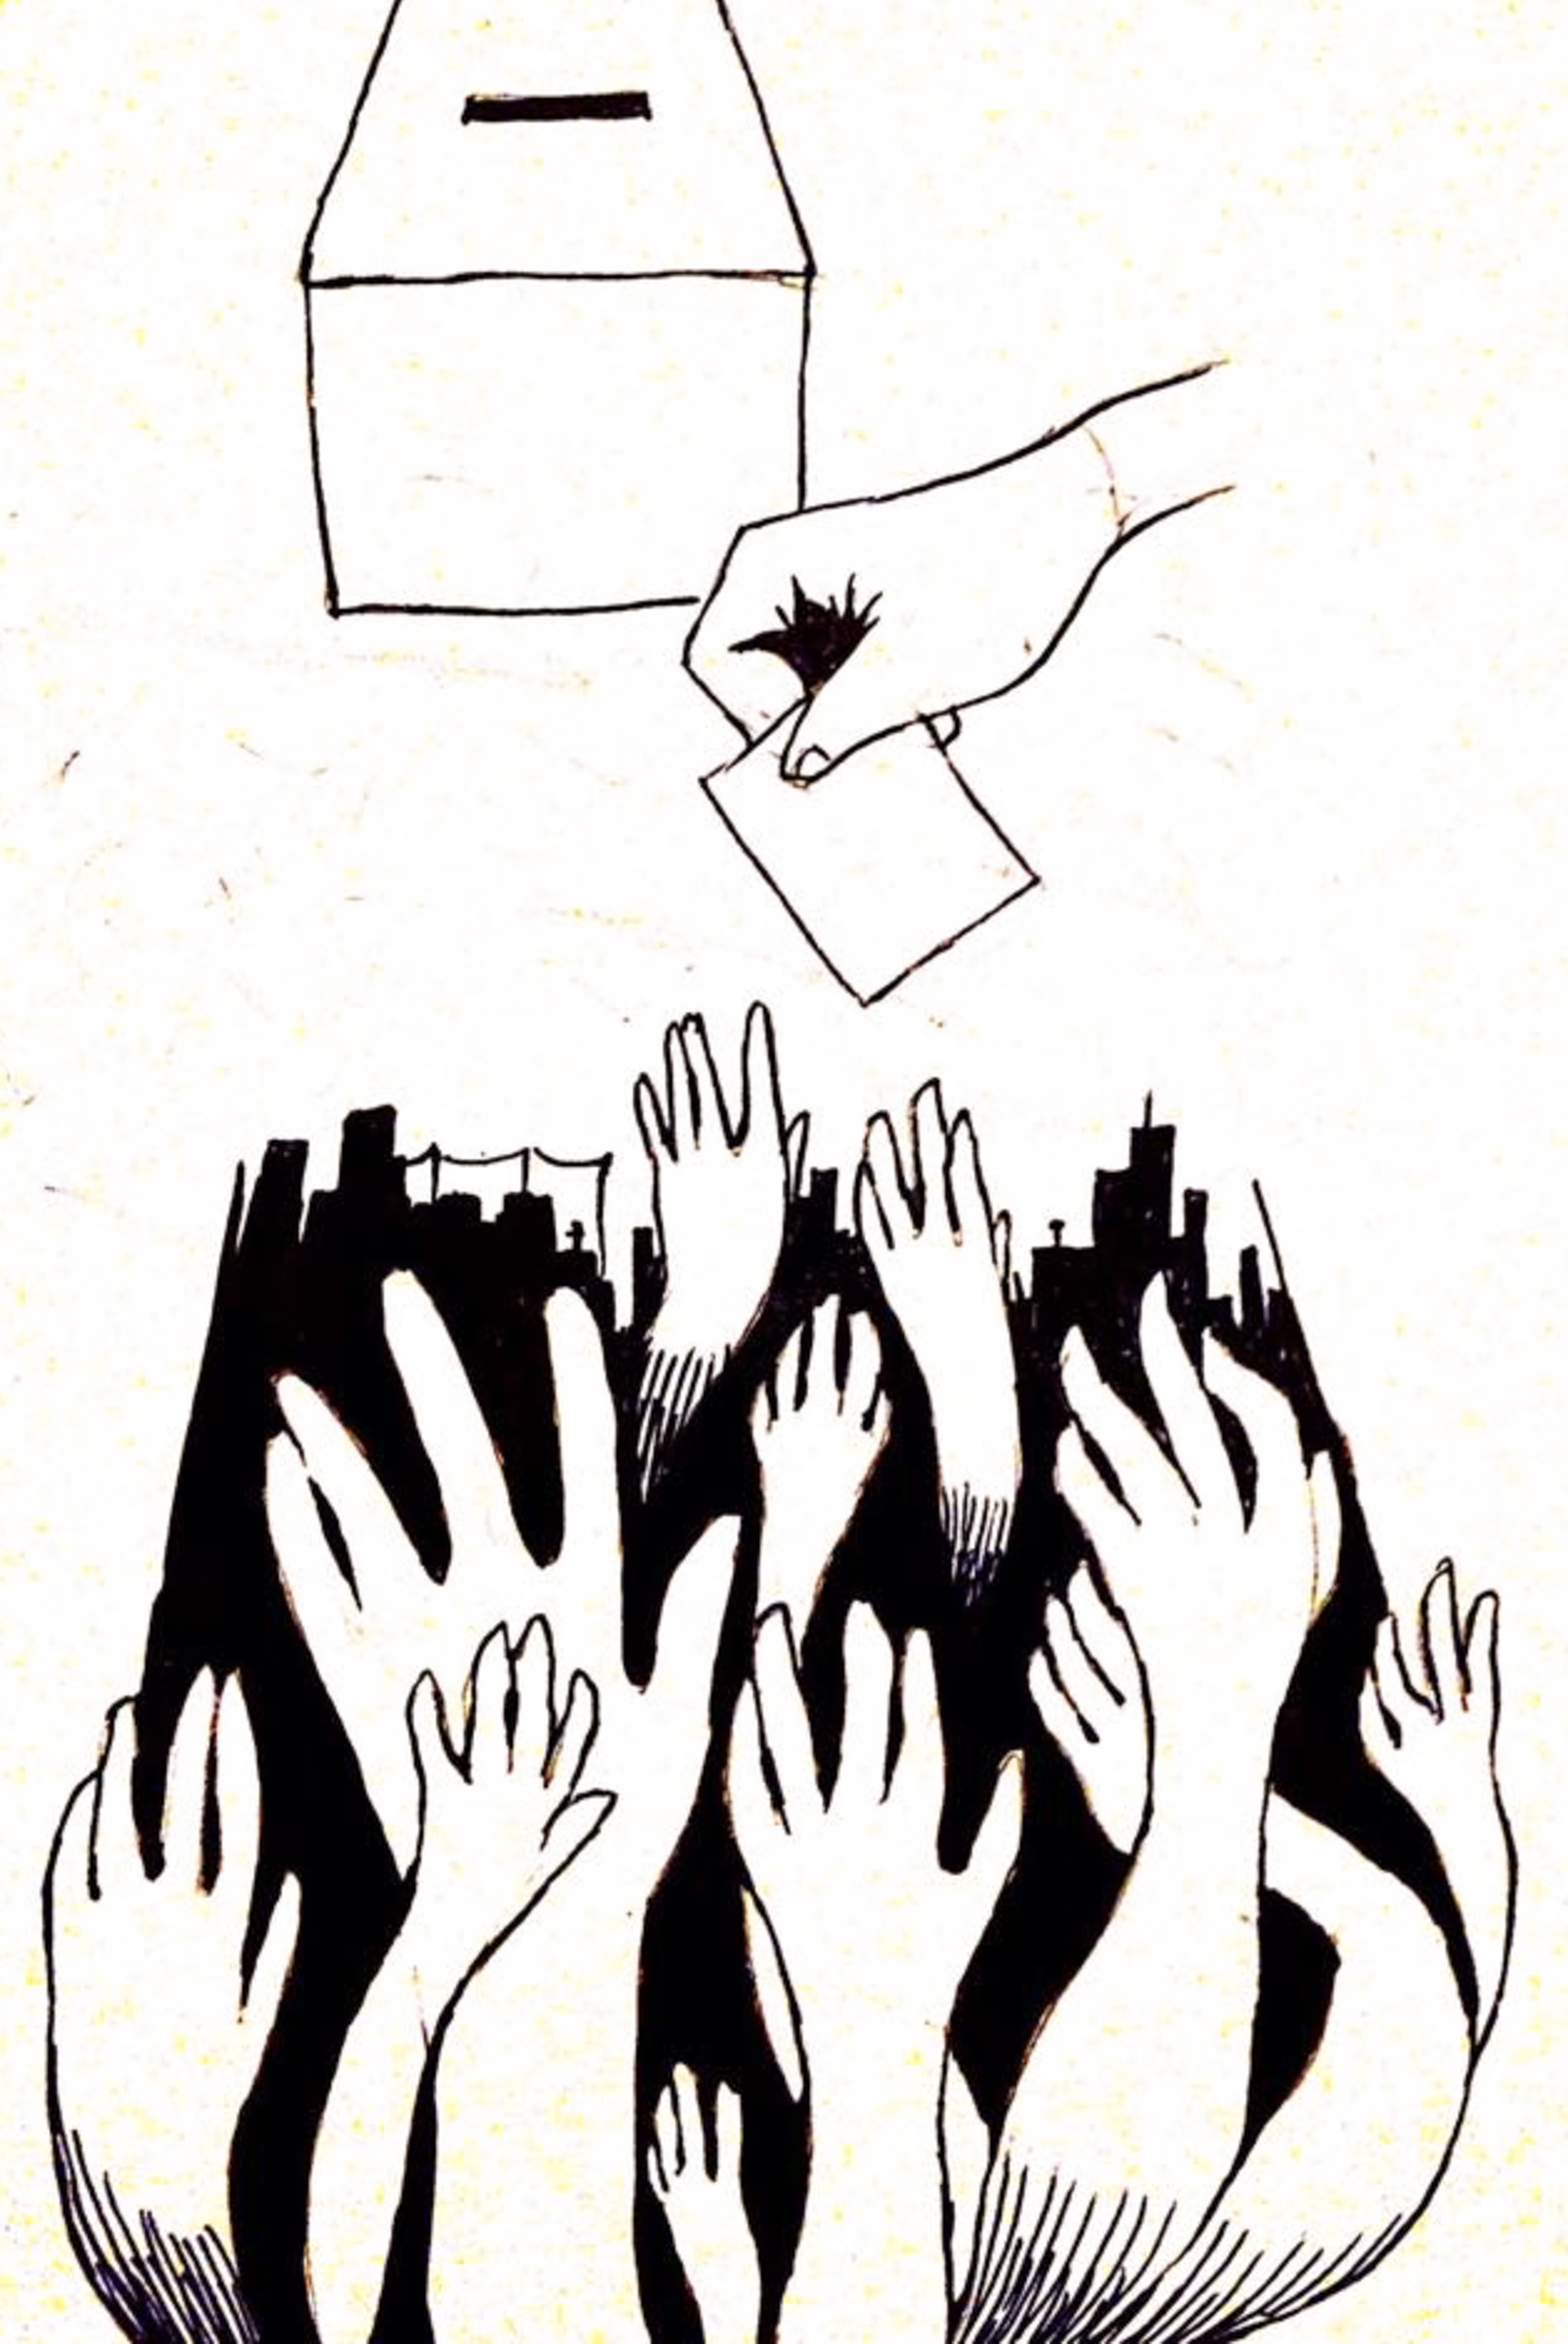 Elections (Illustration by Roger Ko)